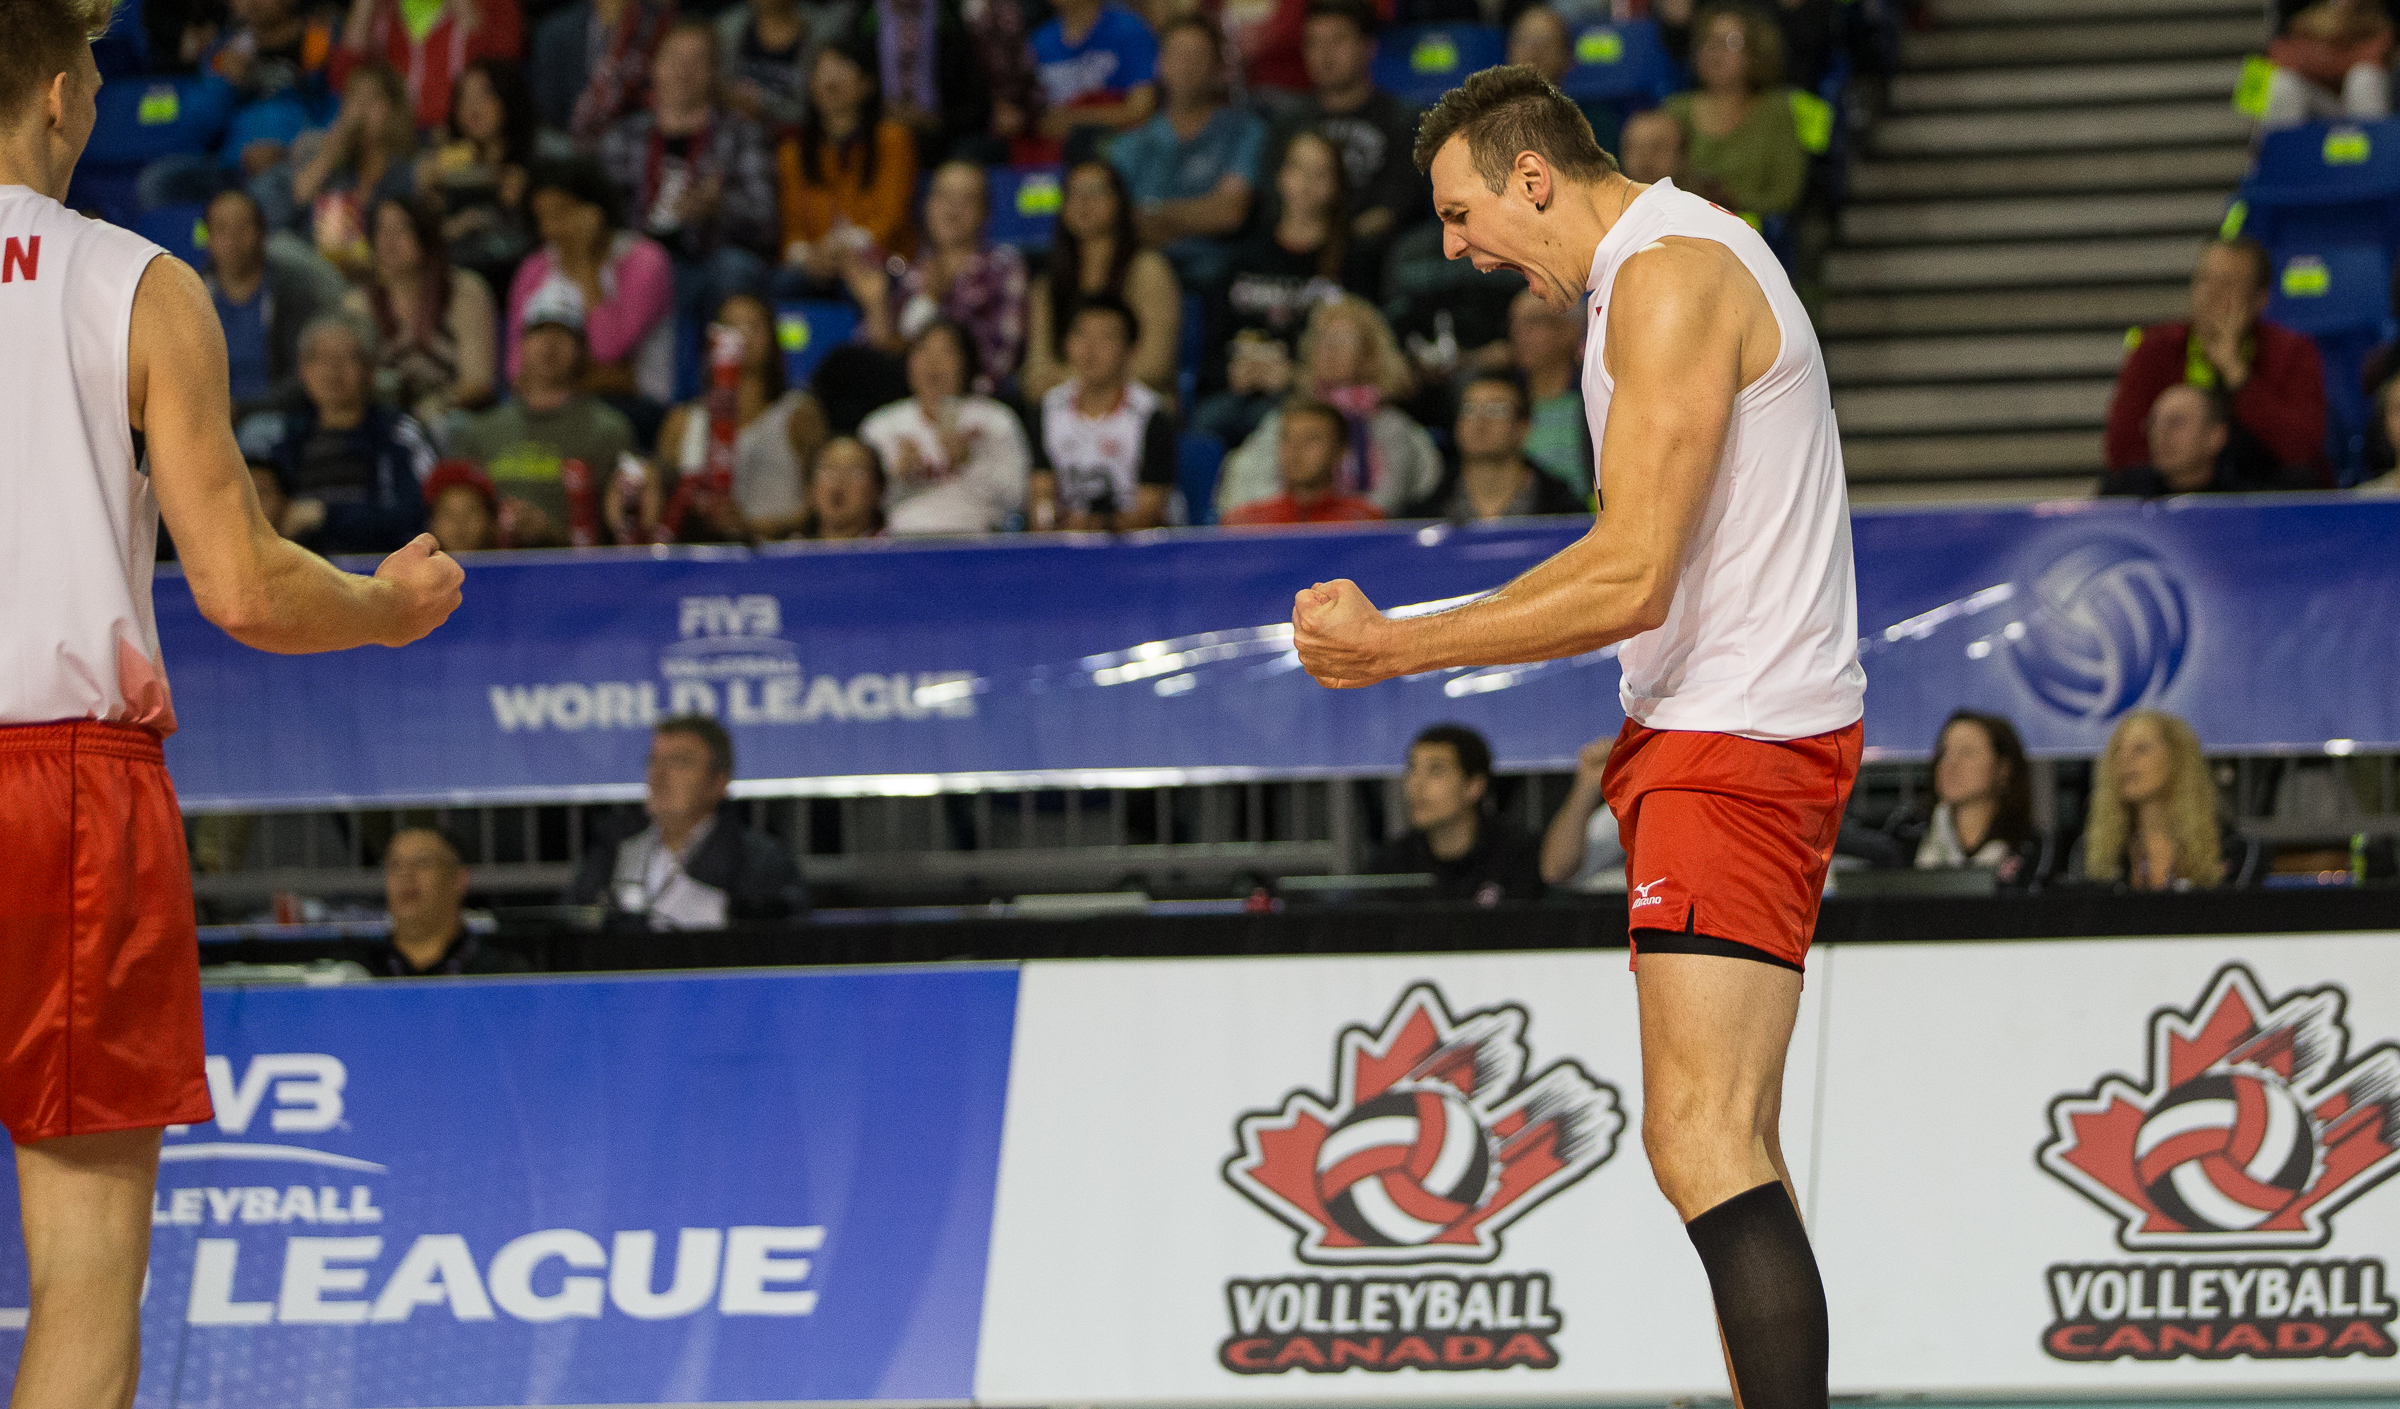 Canada faces Australia tonight at 7 p.m. MT at Rexall Place in Edmonton Photo: FIVB